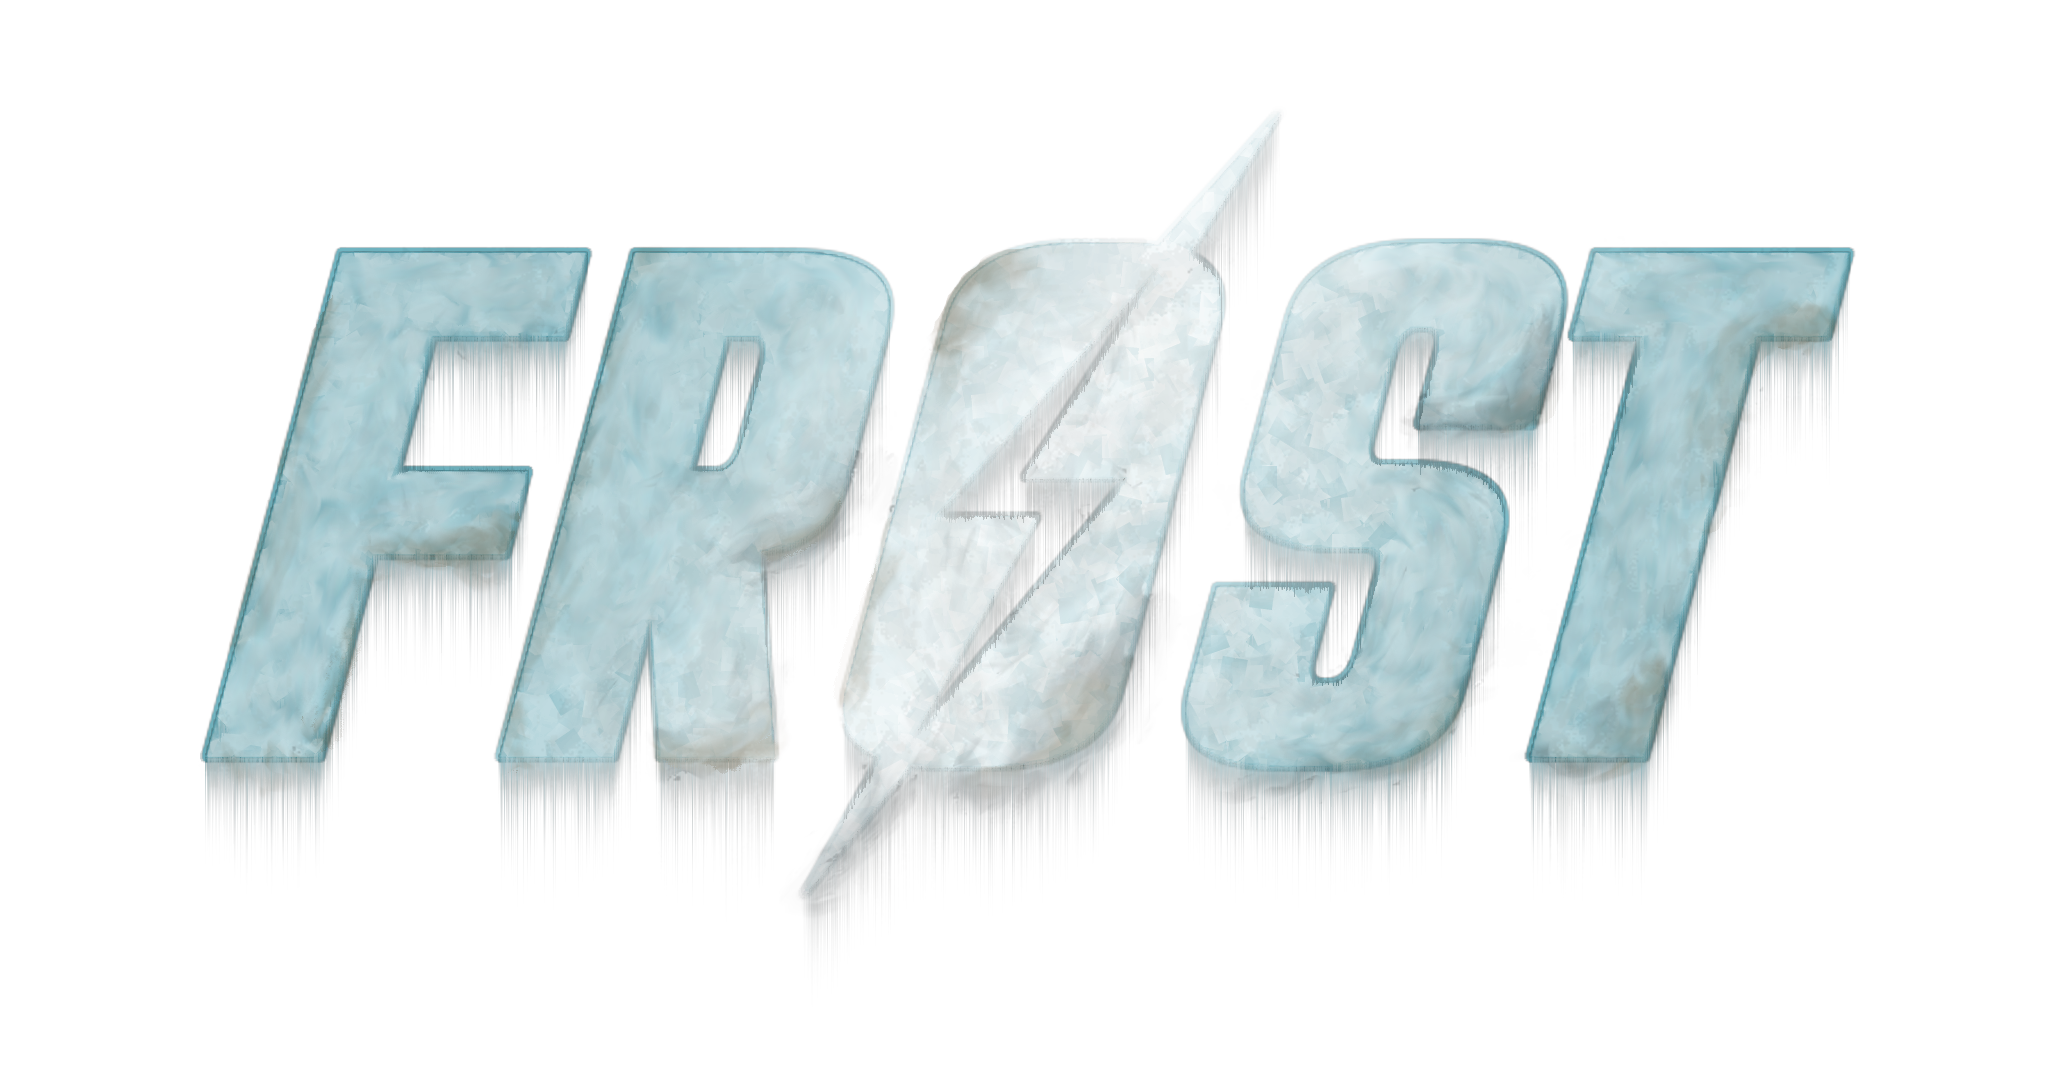 Fallout logo imgur. Transparent frost clip art library library